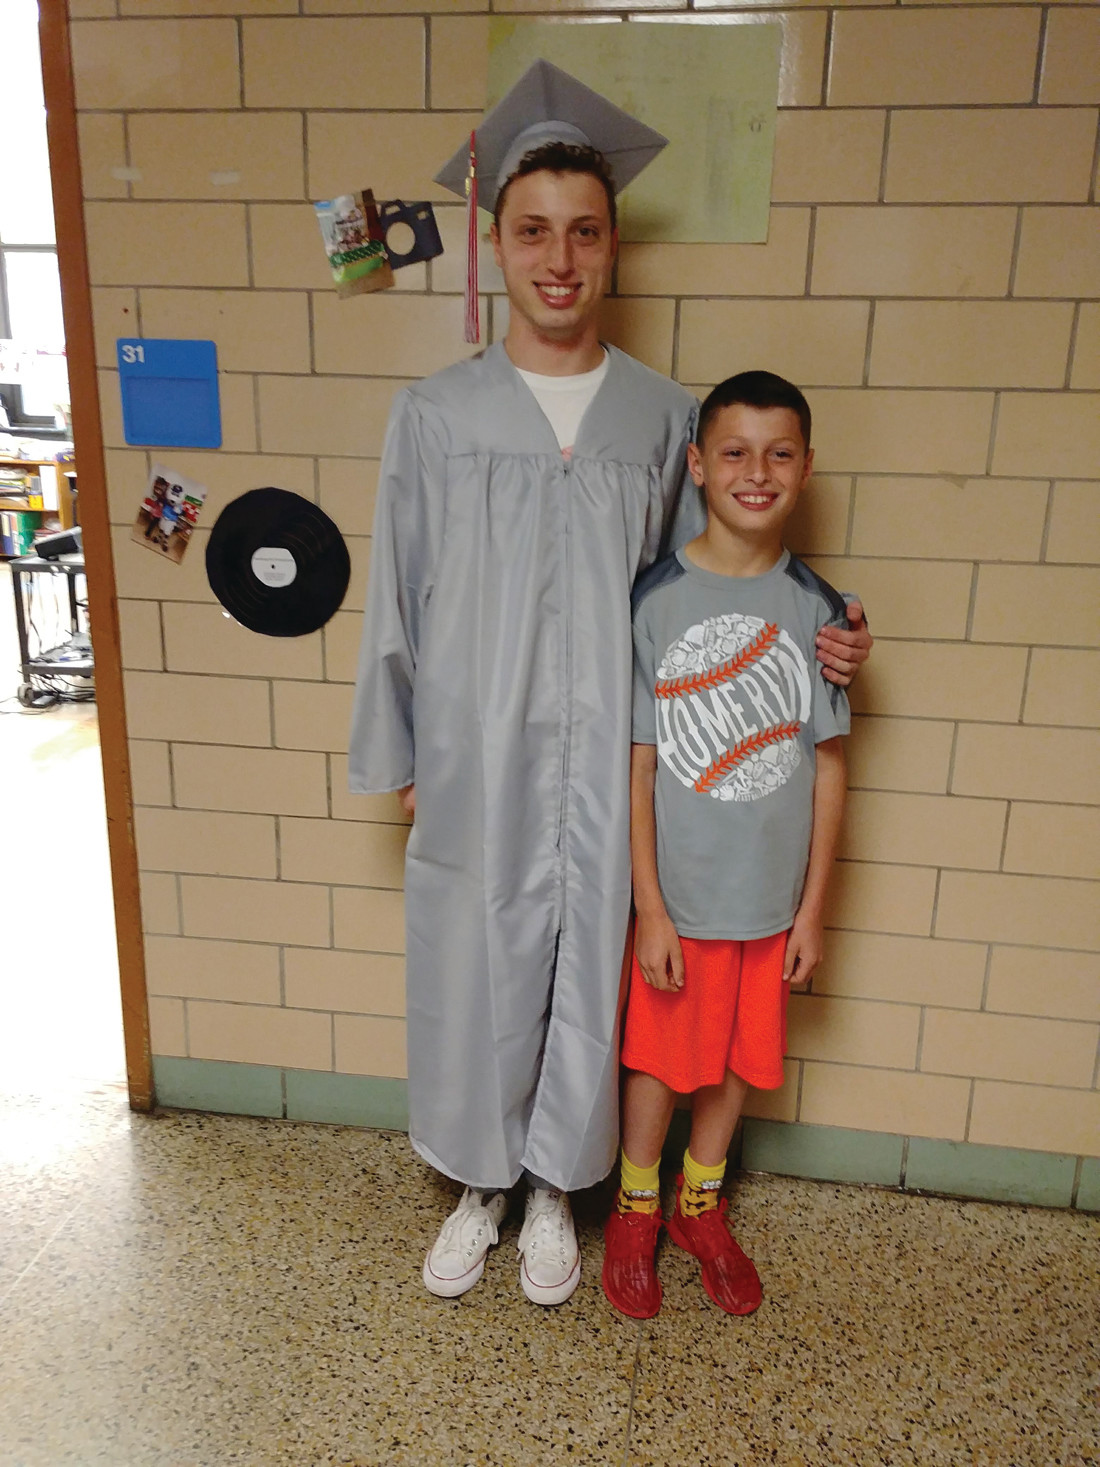 SOMEONE TO LOOK UP TO: At Woodridge Elementary, senior Jeffrey Marchetti posed with his younger brother Jake during his visit.